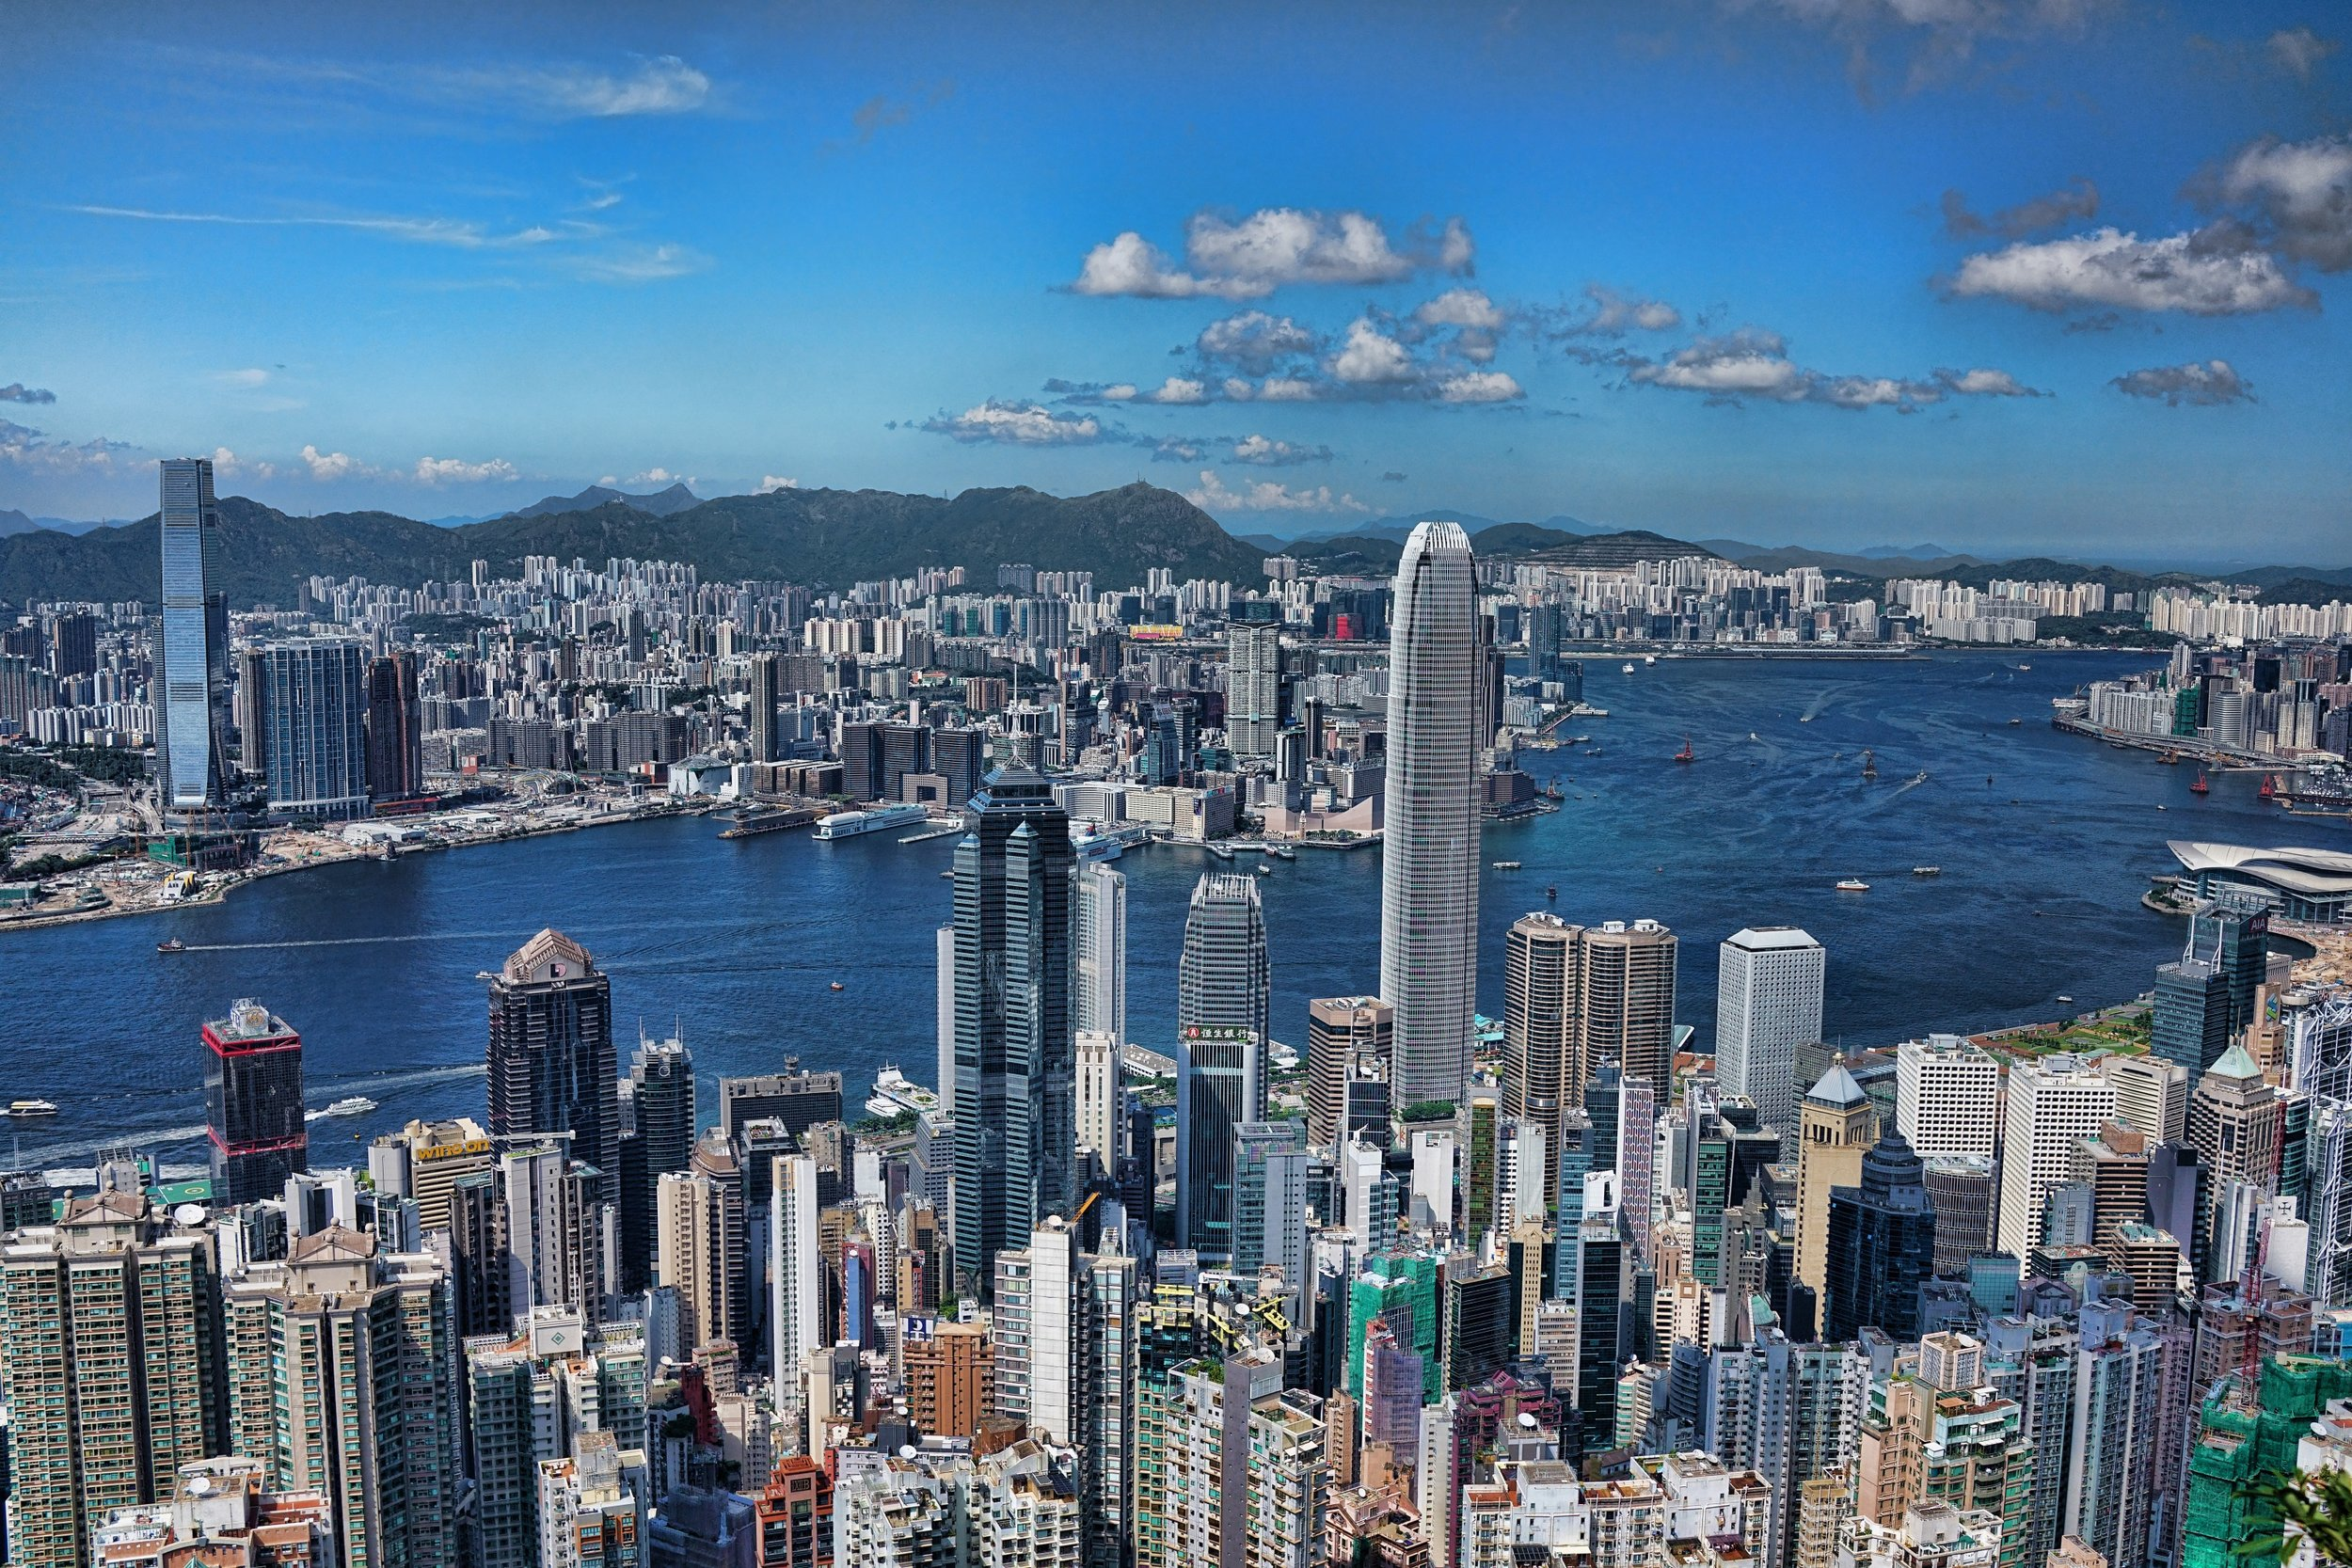 The greatest city view in the World, the view from Victoria Peak in Hong Kong, simply amazing